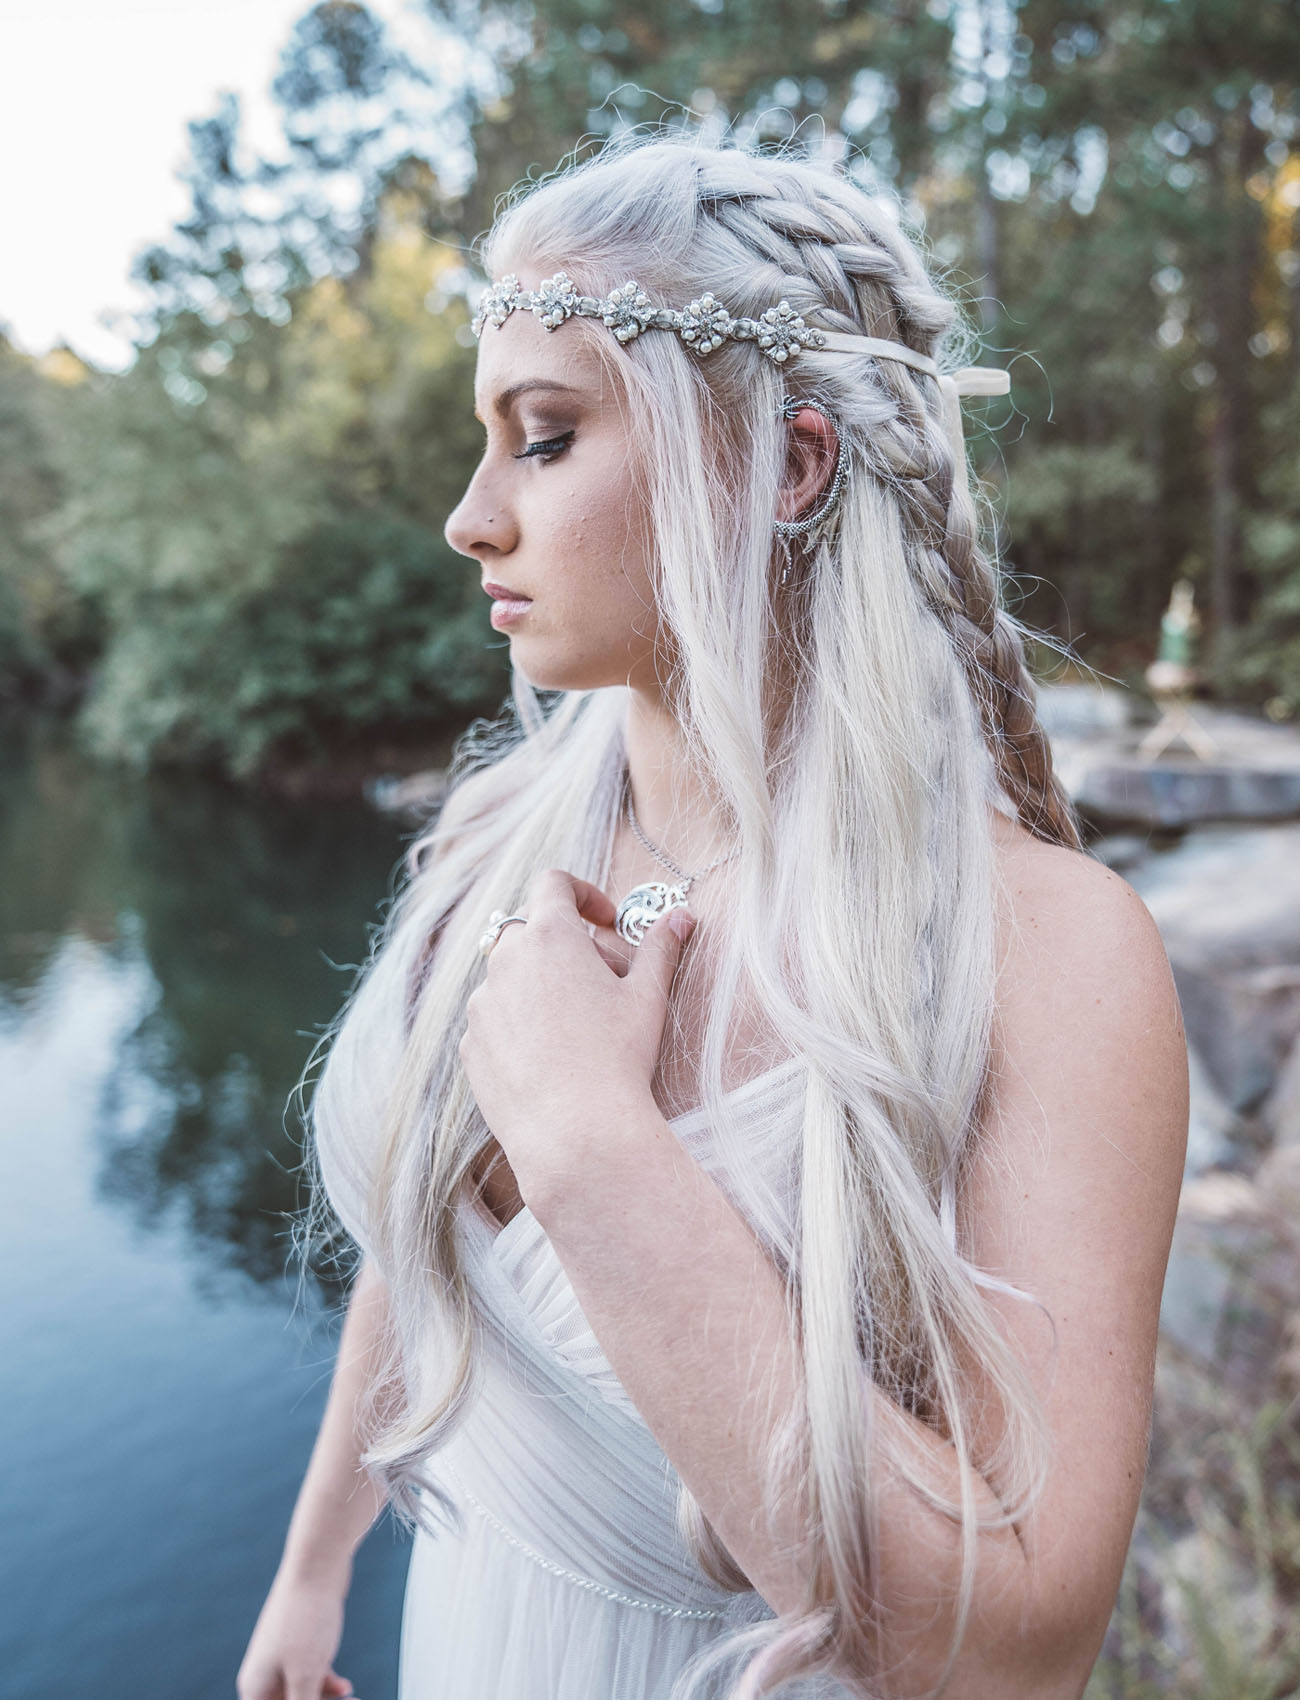 She was rocking a half up braided hairstyle with a chic headpiece and various dragon inspired accessories